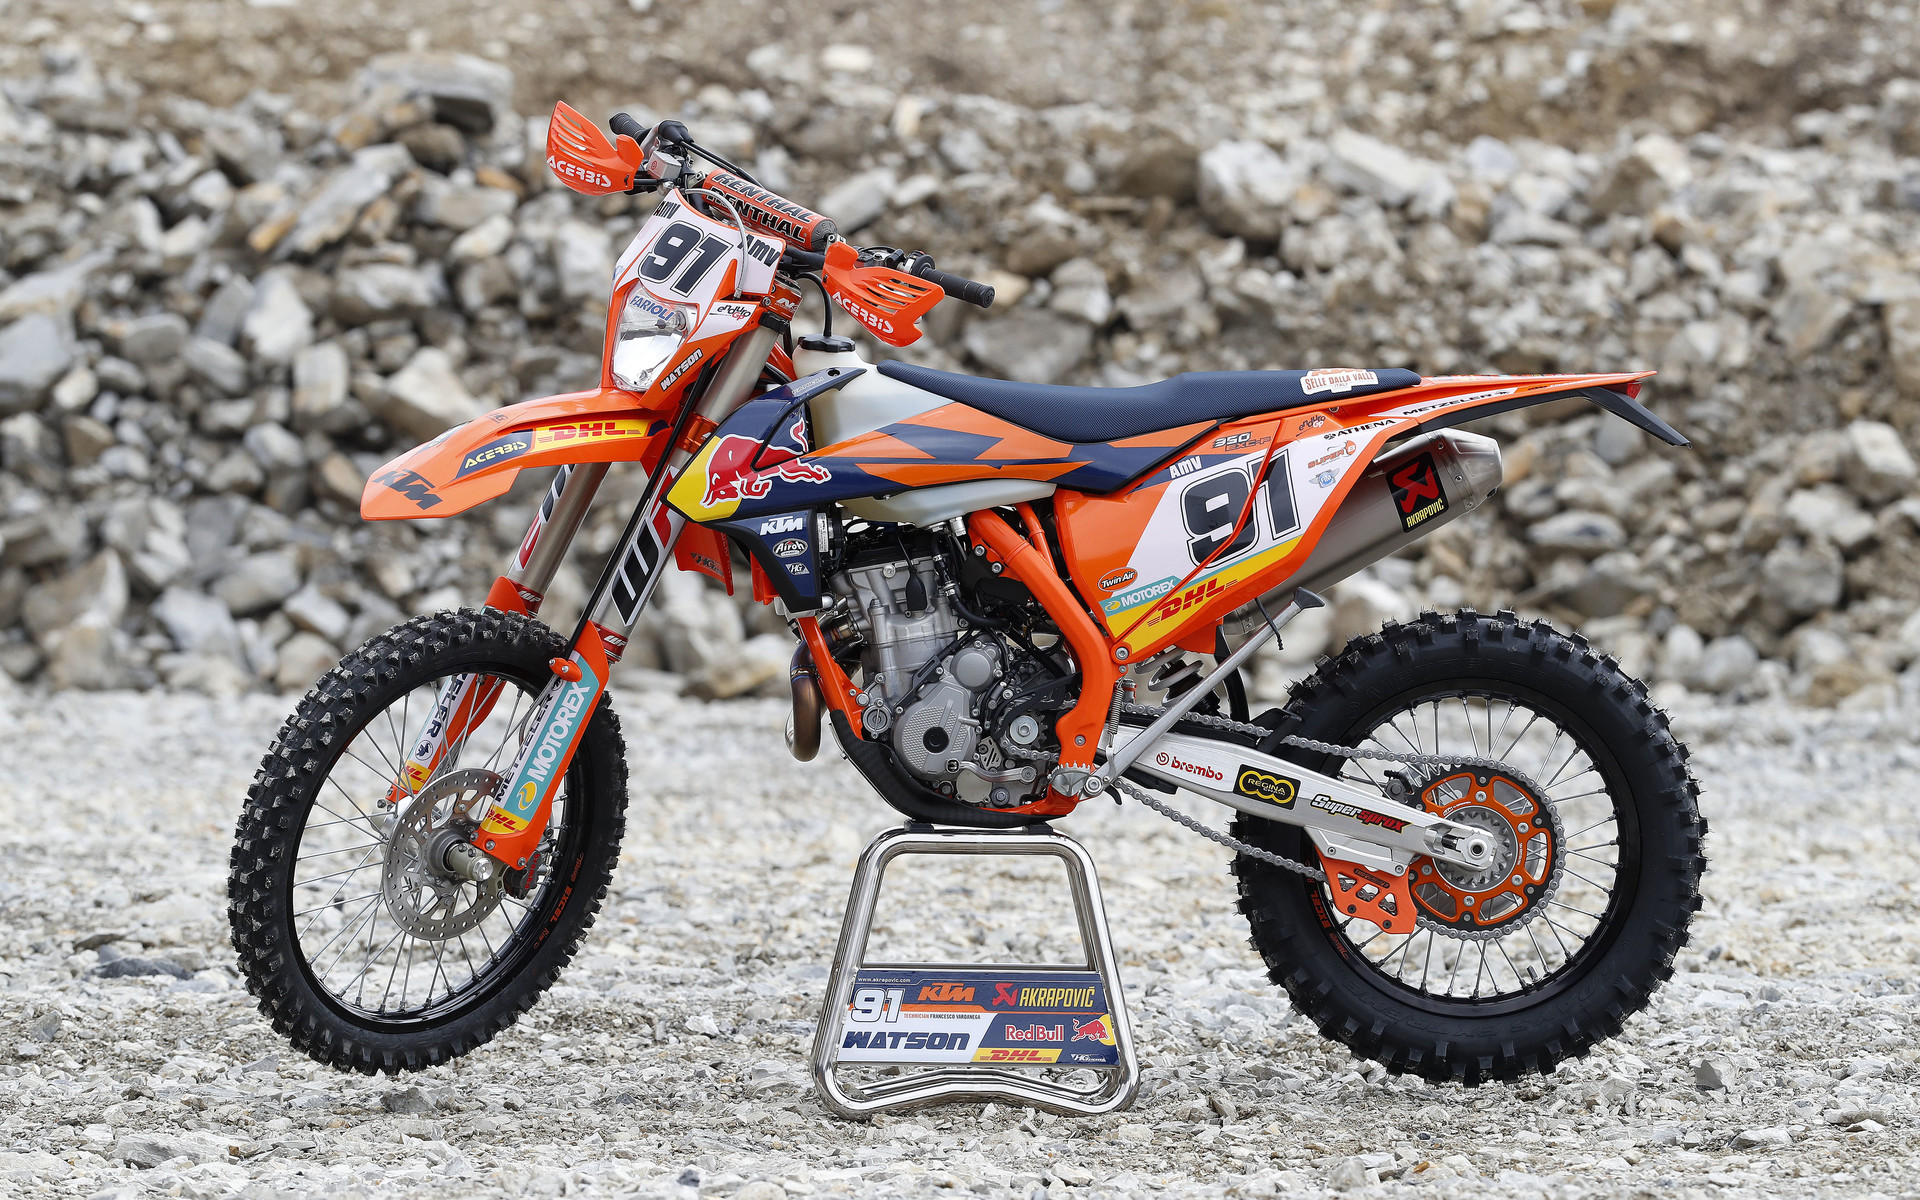 2018 ktm 250f. perfect 2018 in any case we are sure more details will be revealed of the news bikes in  springtime so check out some nice photos for now ktm factory racing team  with 2018 ktm 250f